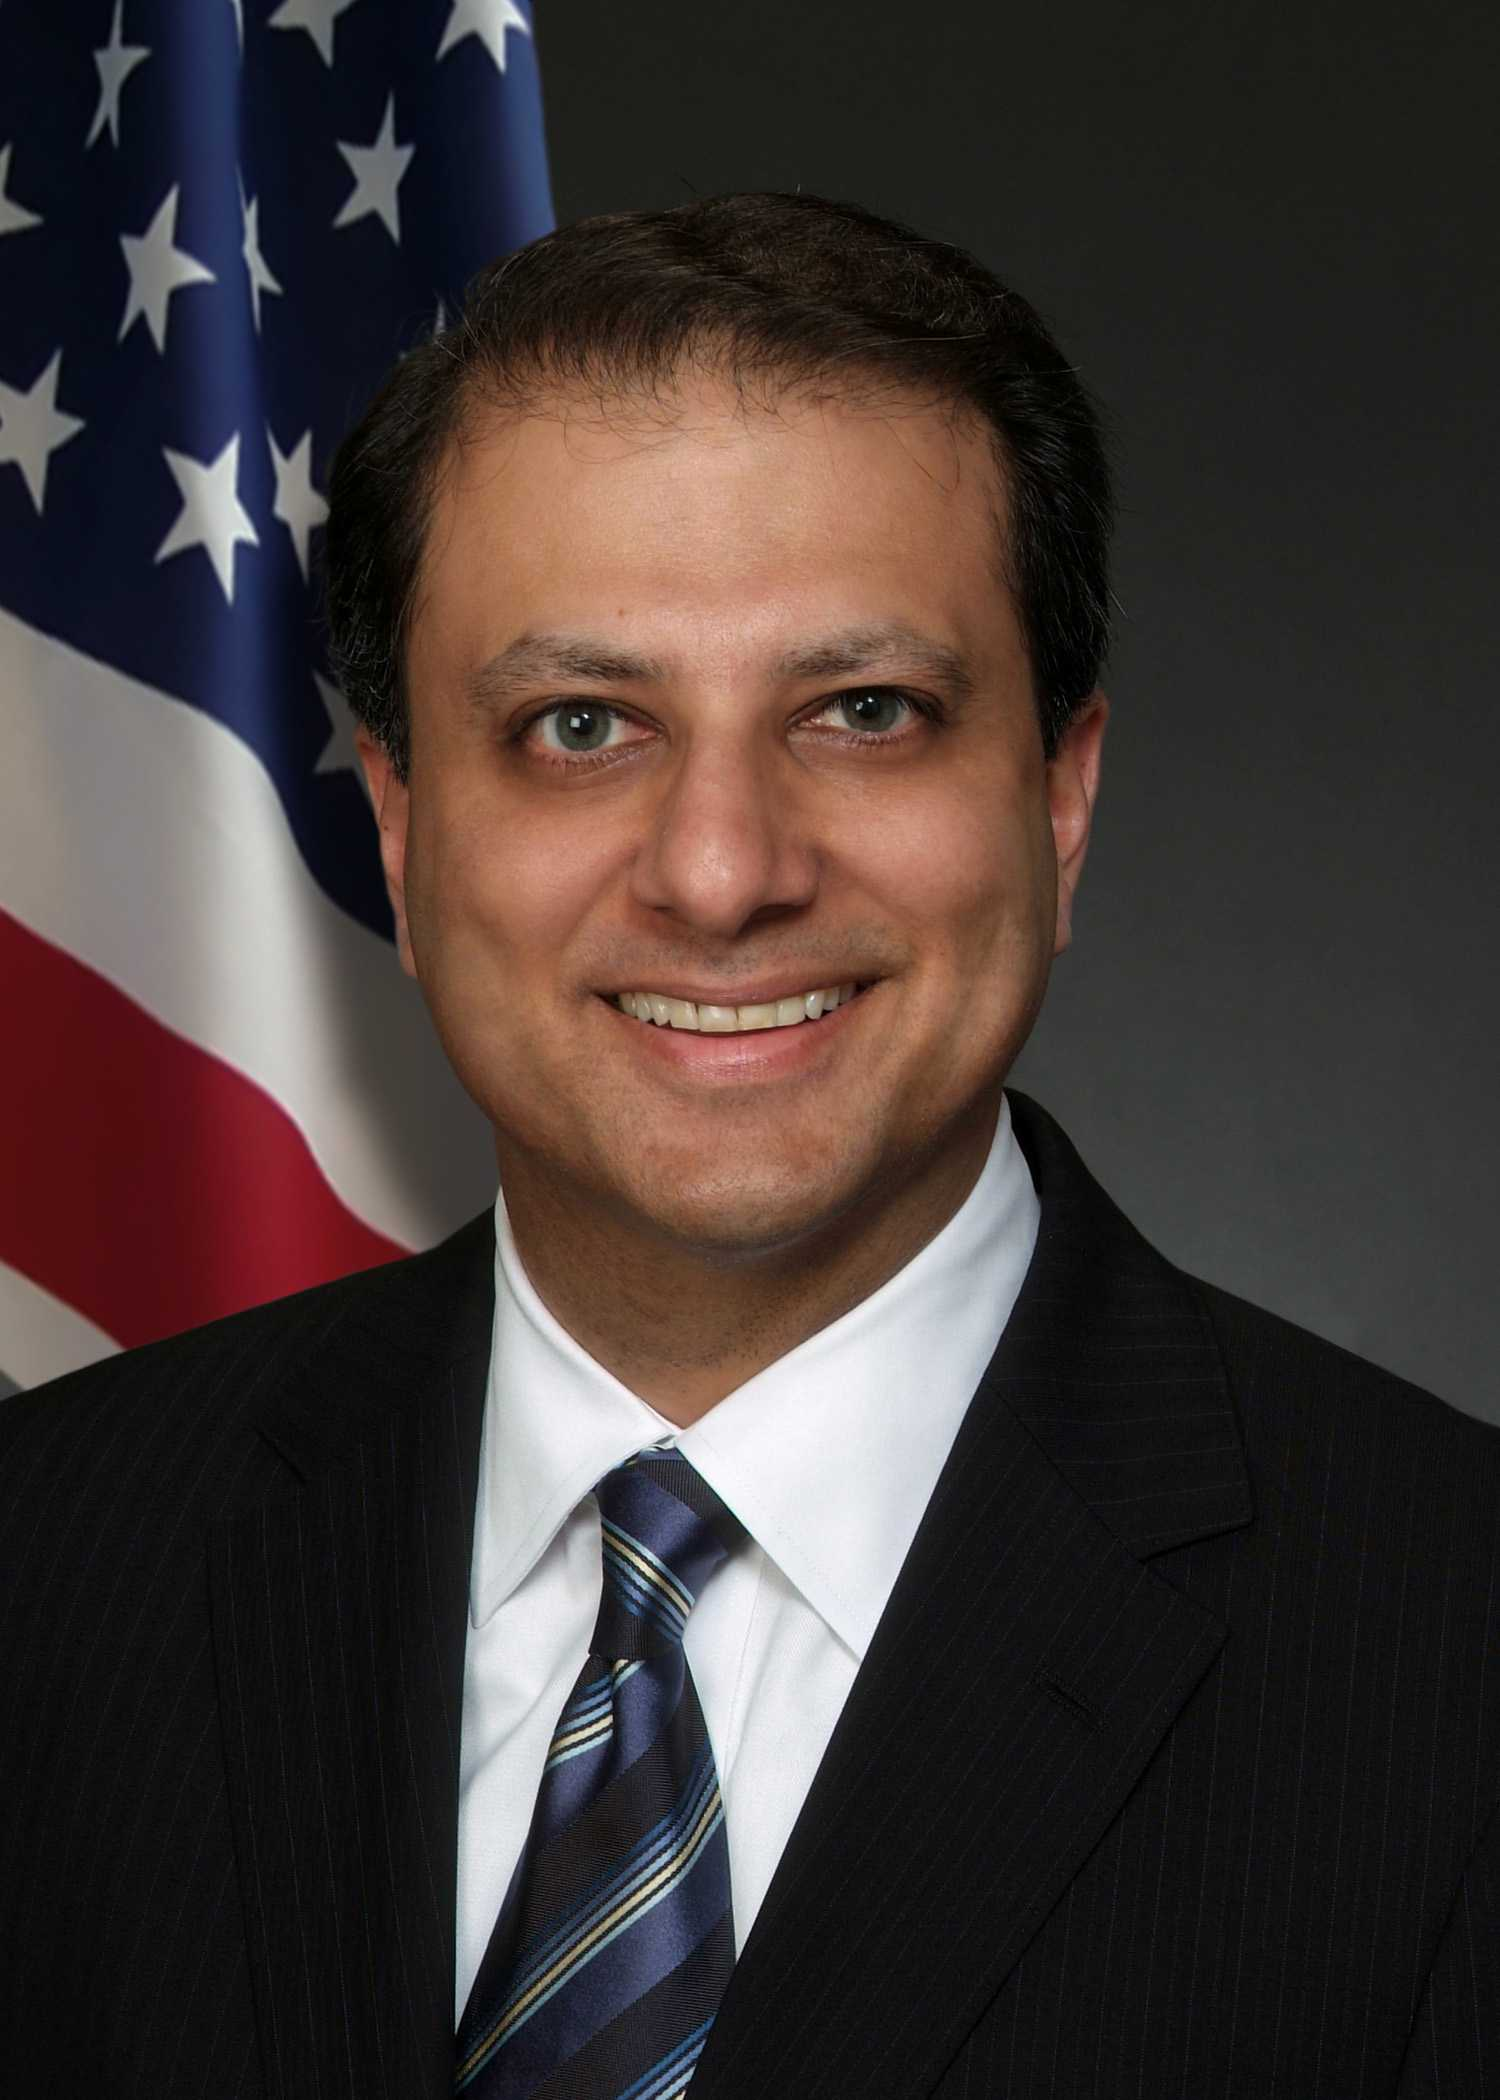 Fired by the Trump administration, former U.S. attorney for the Southern District of New York, Preet Bharara, will be joining NYU Law School on April 1. Both Bharara and the members of the school are excited for his position as a distinguished scholar in residence.